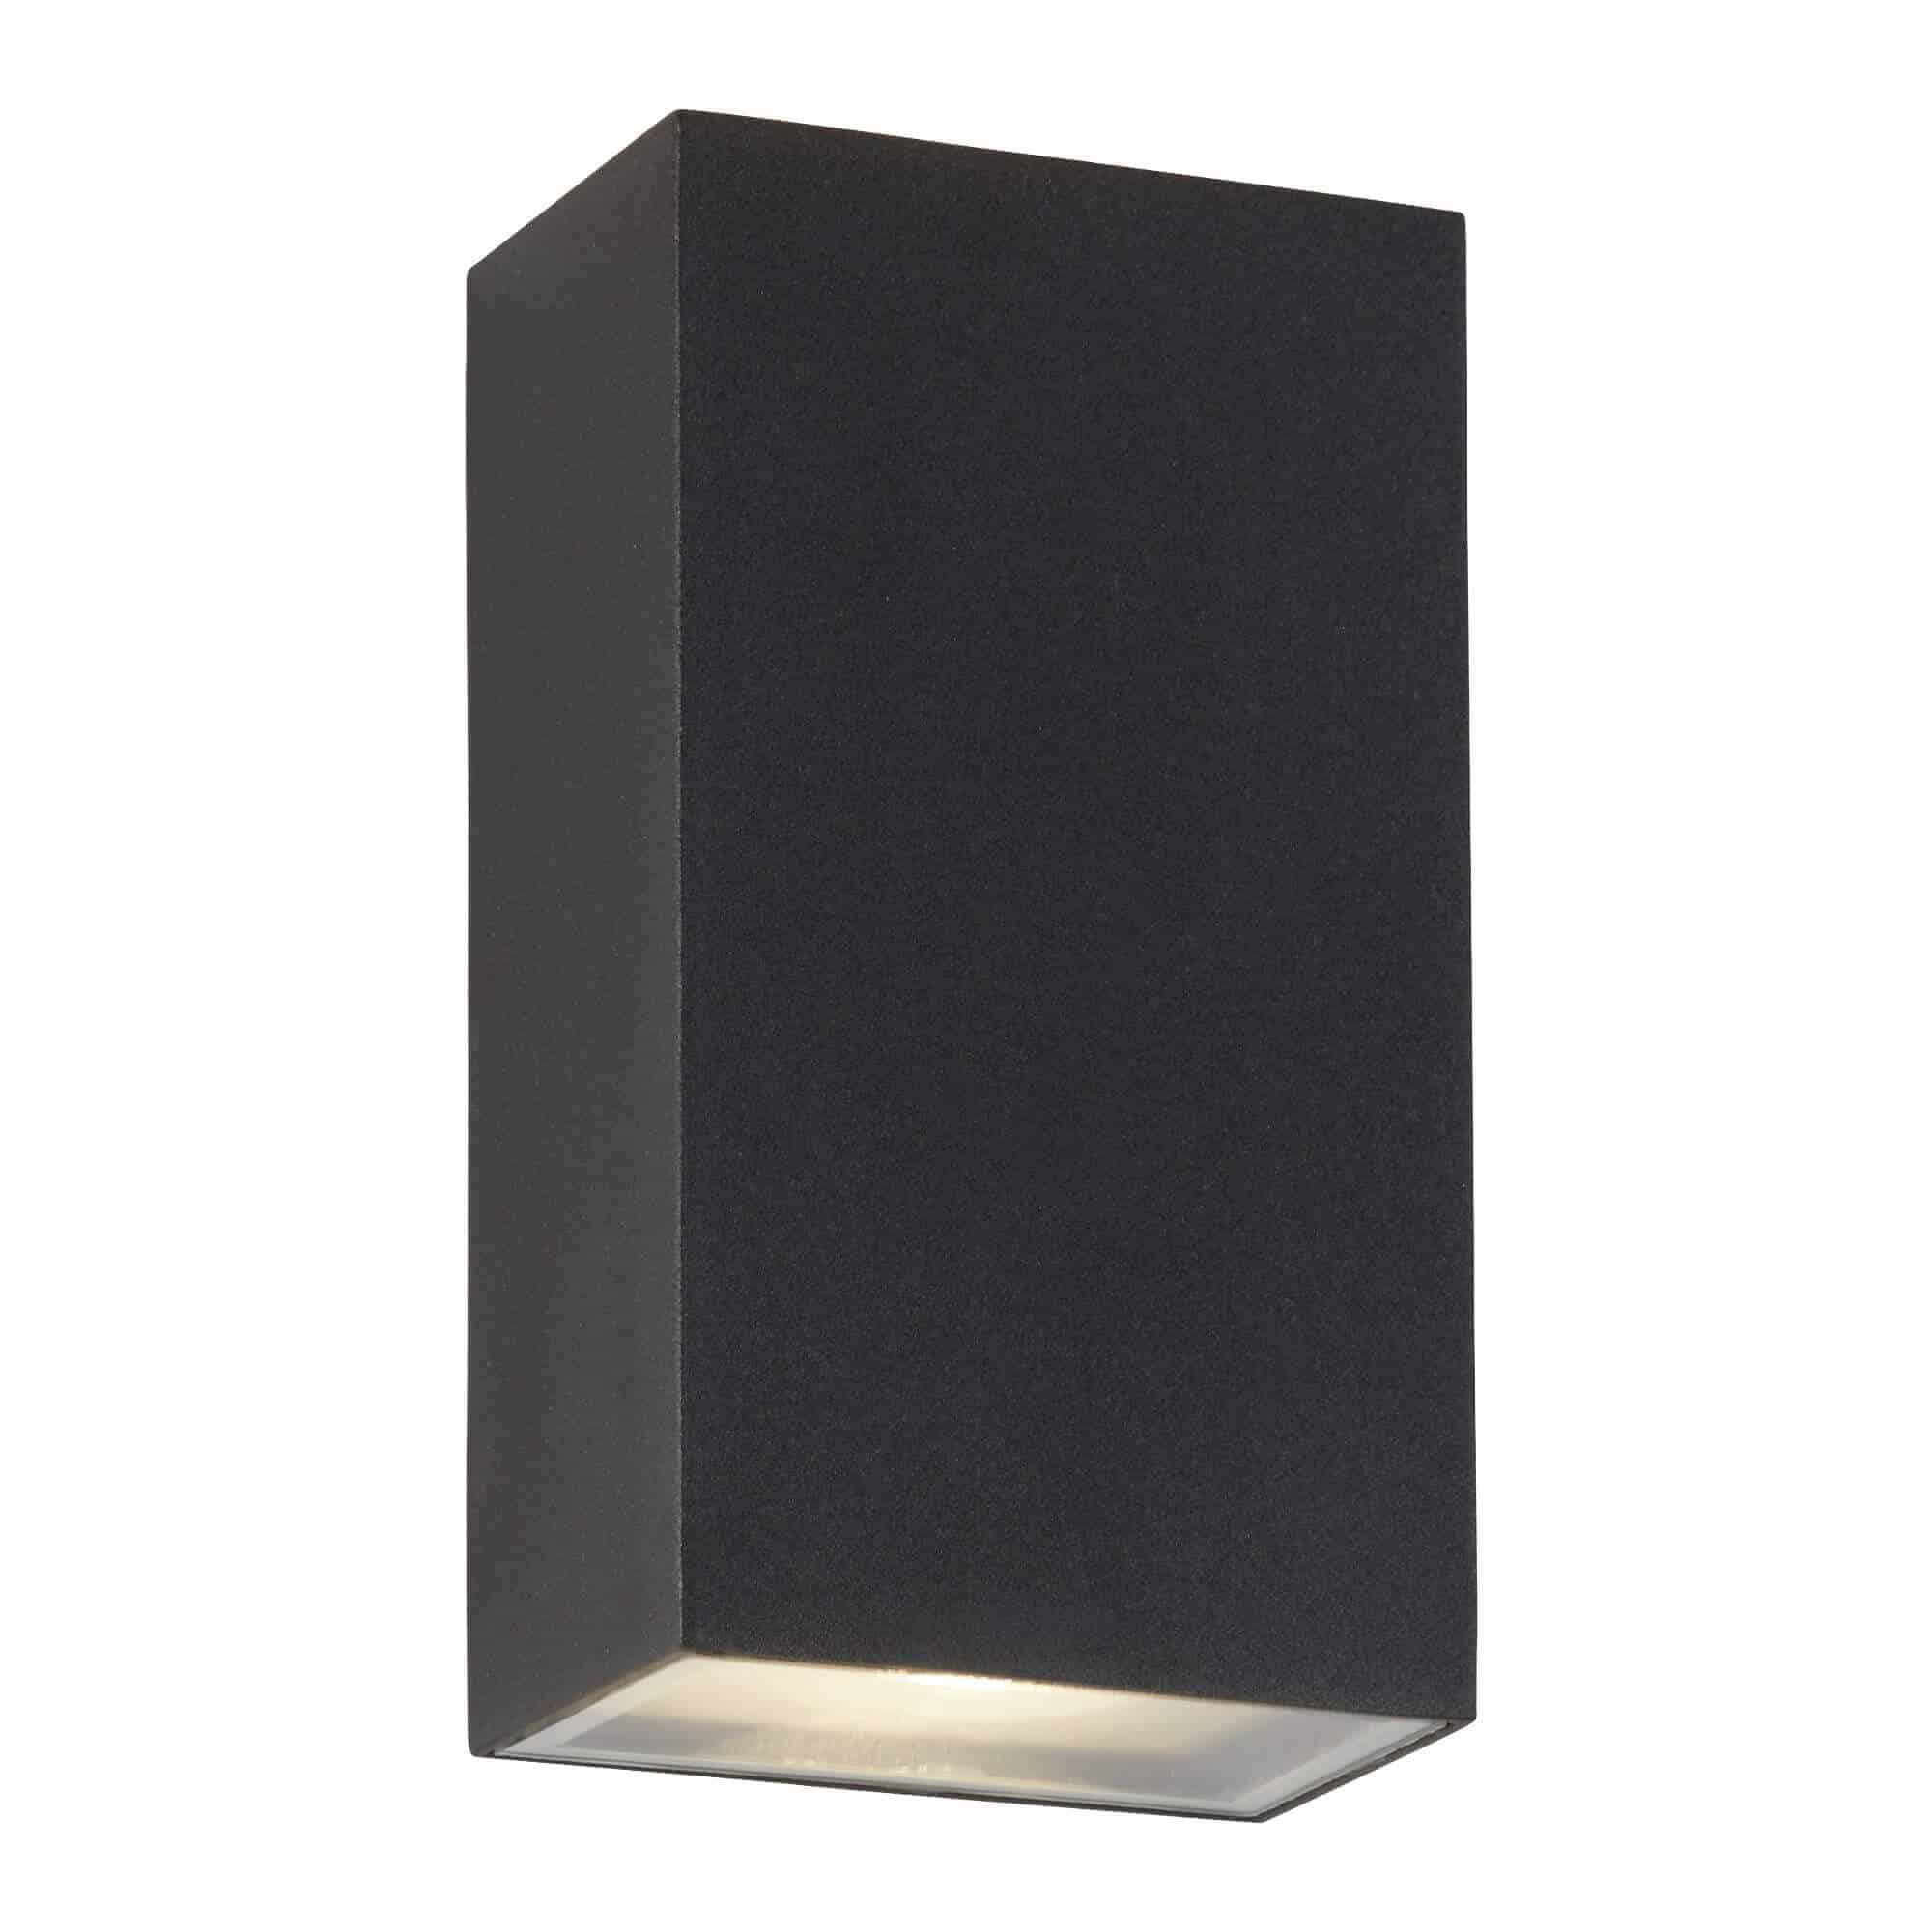 8852BK – Searchlight LED Black Outdoor Up/Down  Rectangle Wall Bracket